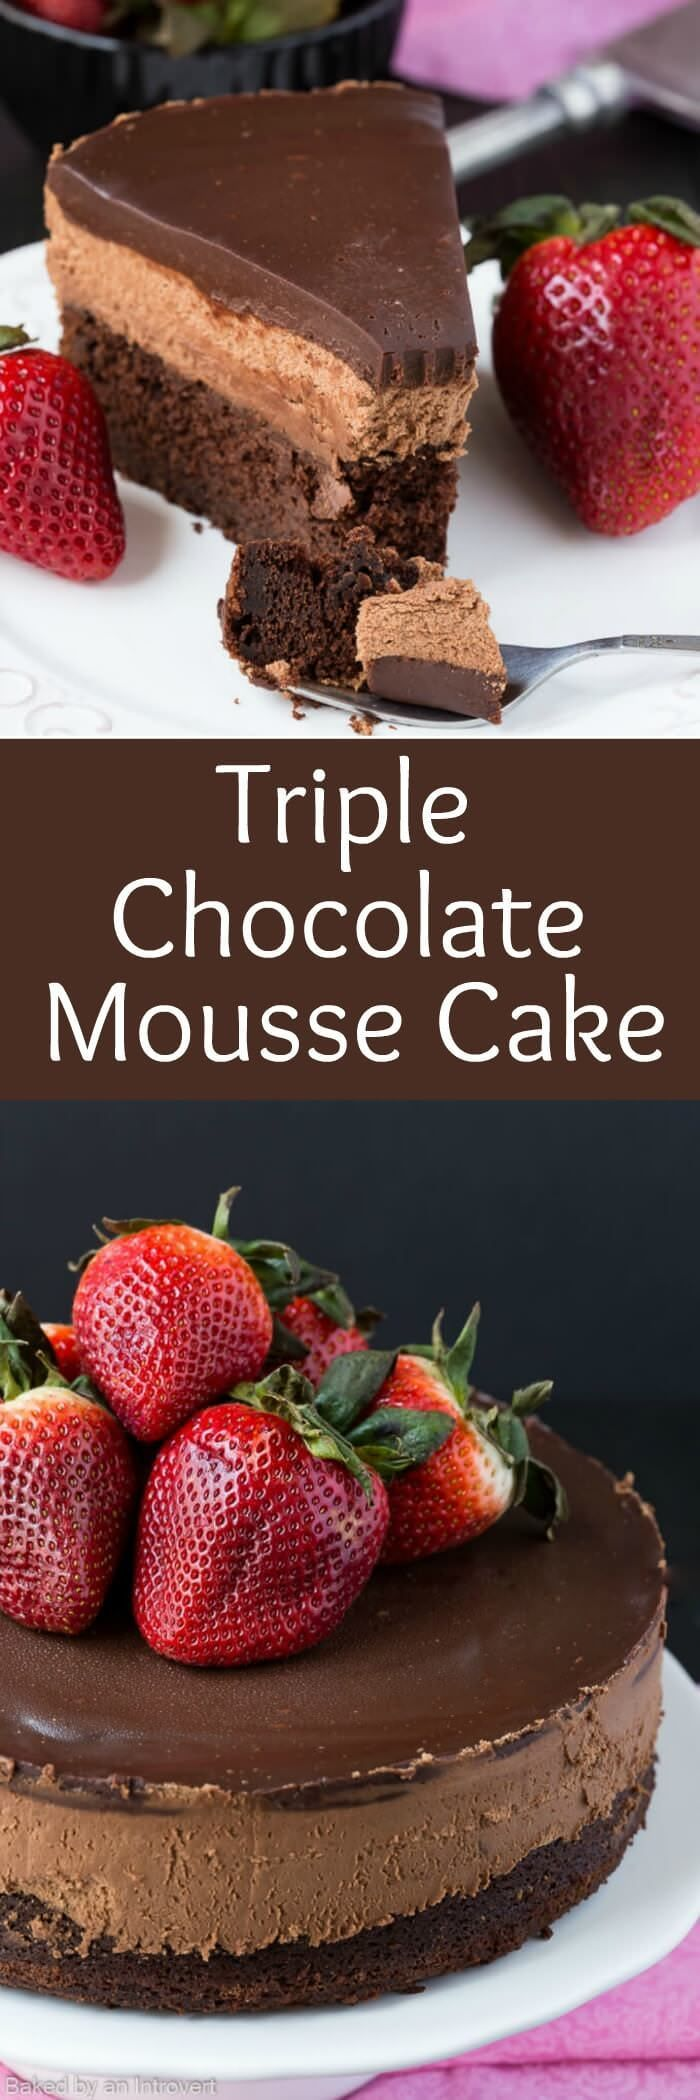 Triple chocolate Mousse Cake is the perfect light dessert recipe. It's made with a chocolate cake base, cool creamy mousse filling, and topped with rich dark chocolate ganache. Serve the cake with fresh berries for an extra special treat that's perfect for your special occasion. #mousse #cake #chocolate